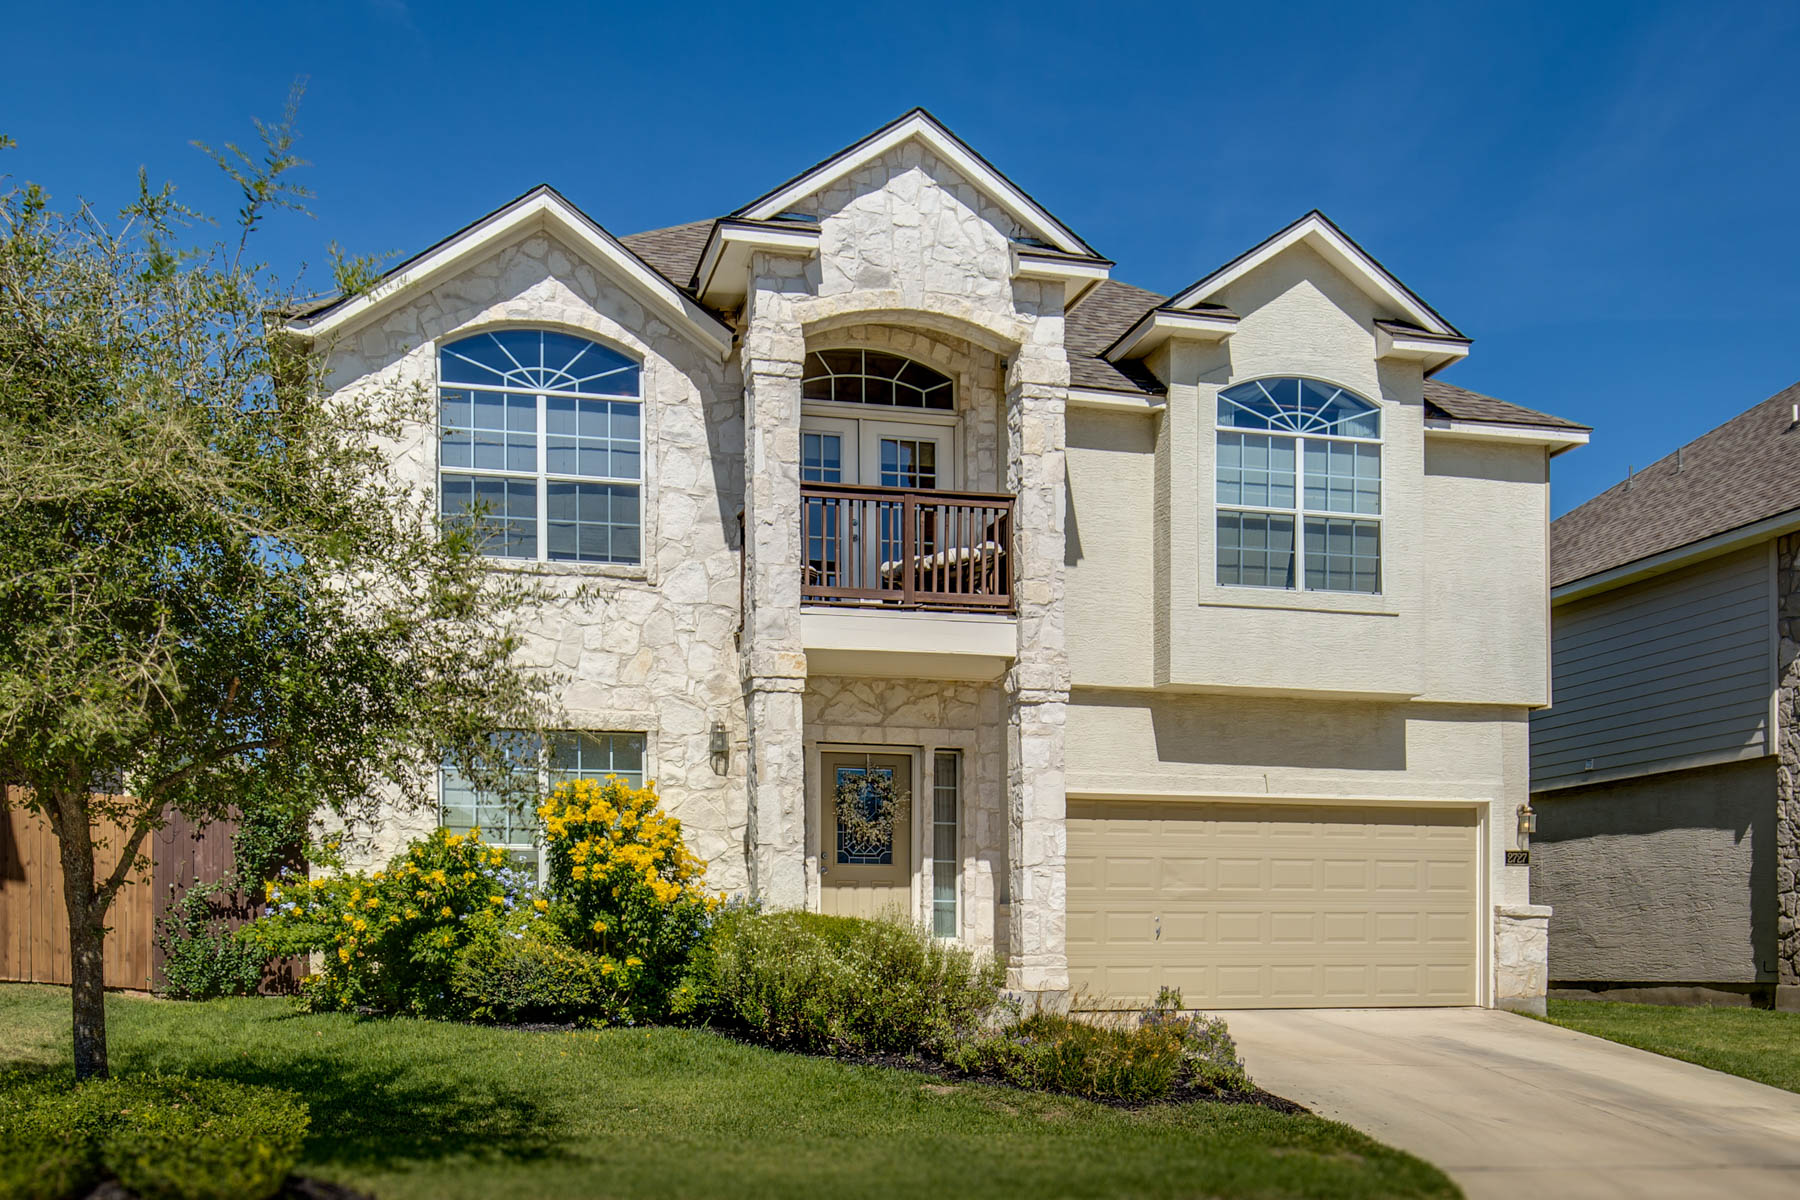 Single Family Home for Sale at Excellent Home in Trinity Oaks 2727 Summit Vw San Antonio, Texas 78261 United States